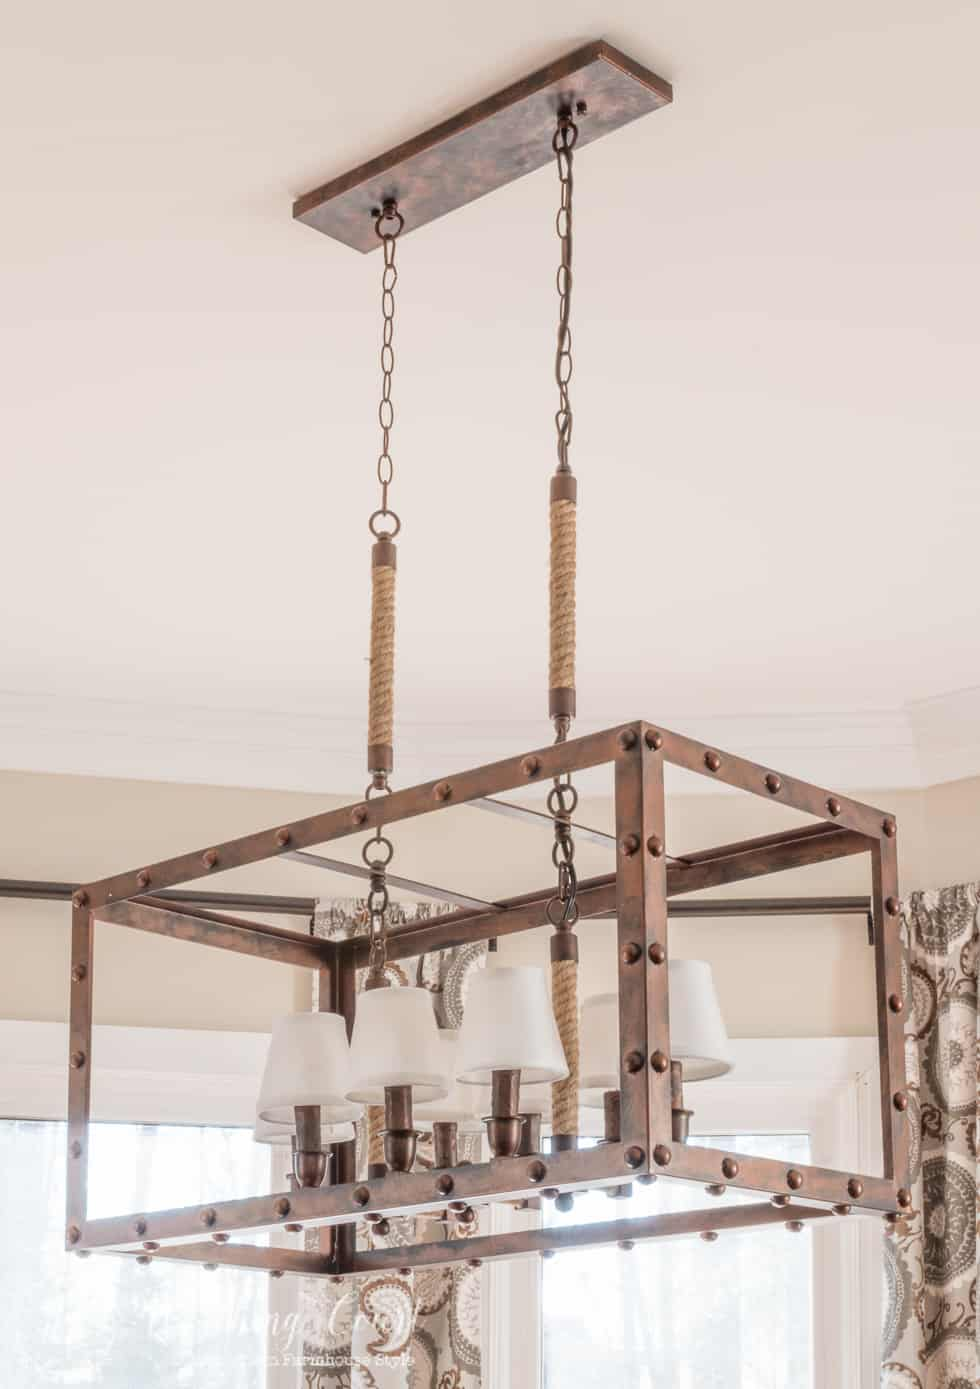 Rustic industrial light fixture in a farmhouse style kitchen breakfast area